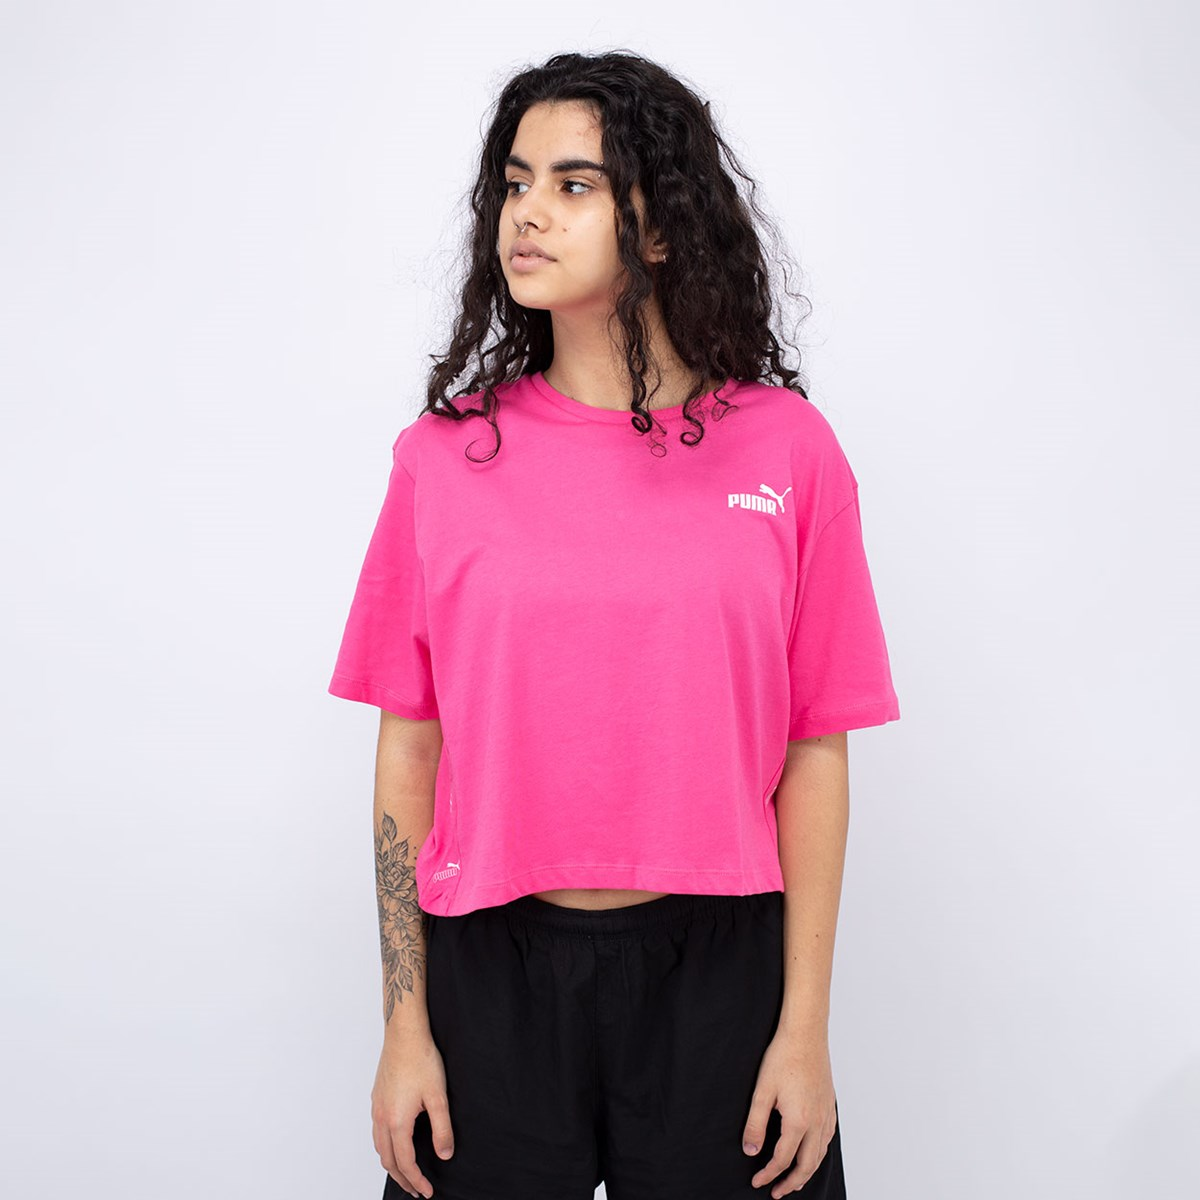 Camiseta Puma Amplified Glowing Pink 583609-25